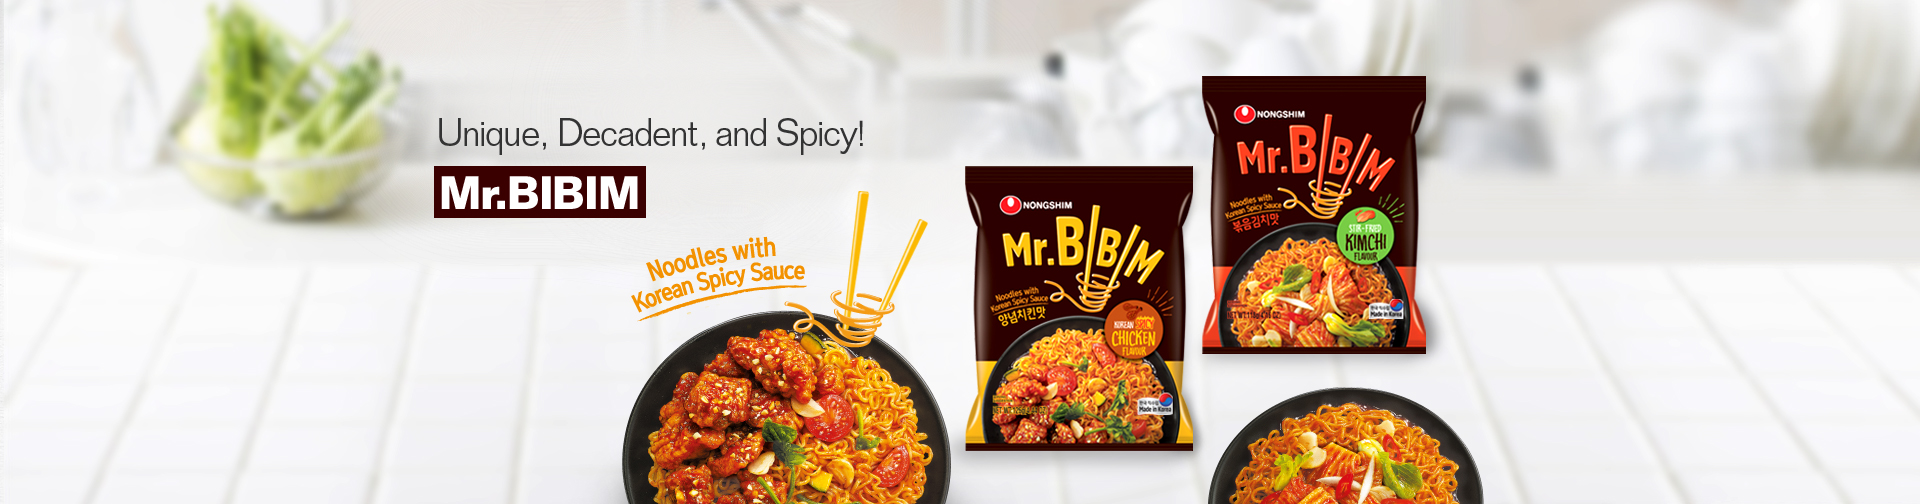 It's unique. It's decadent. It's spicy!  